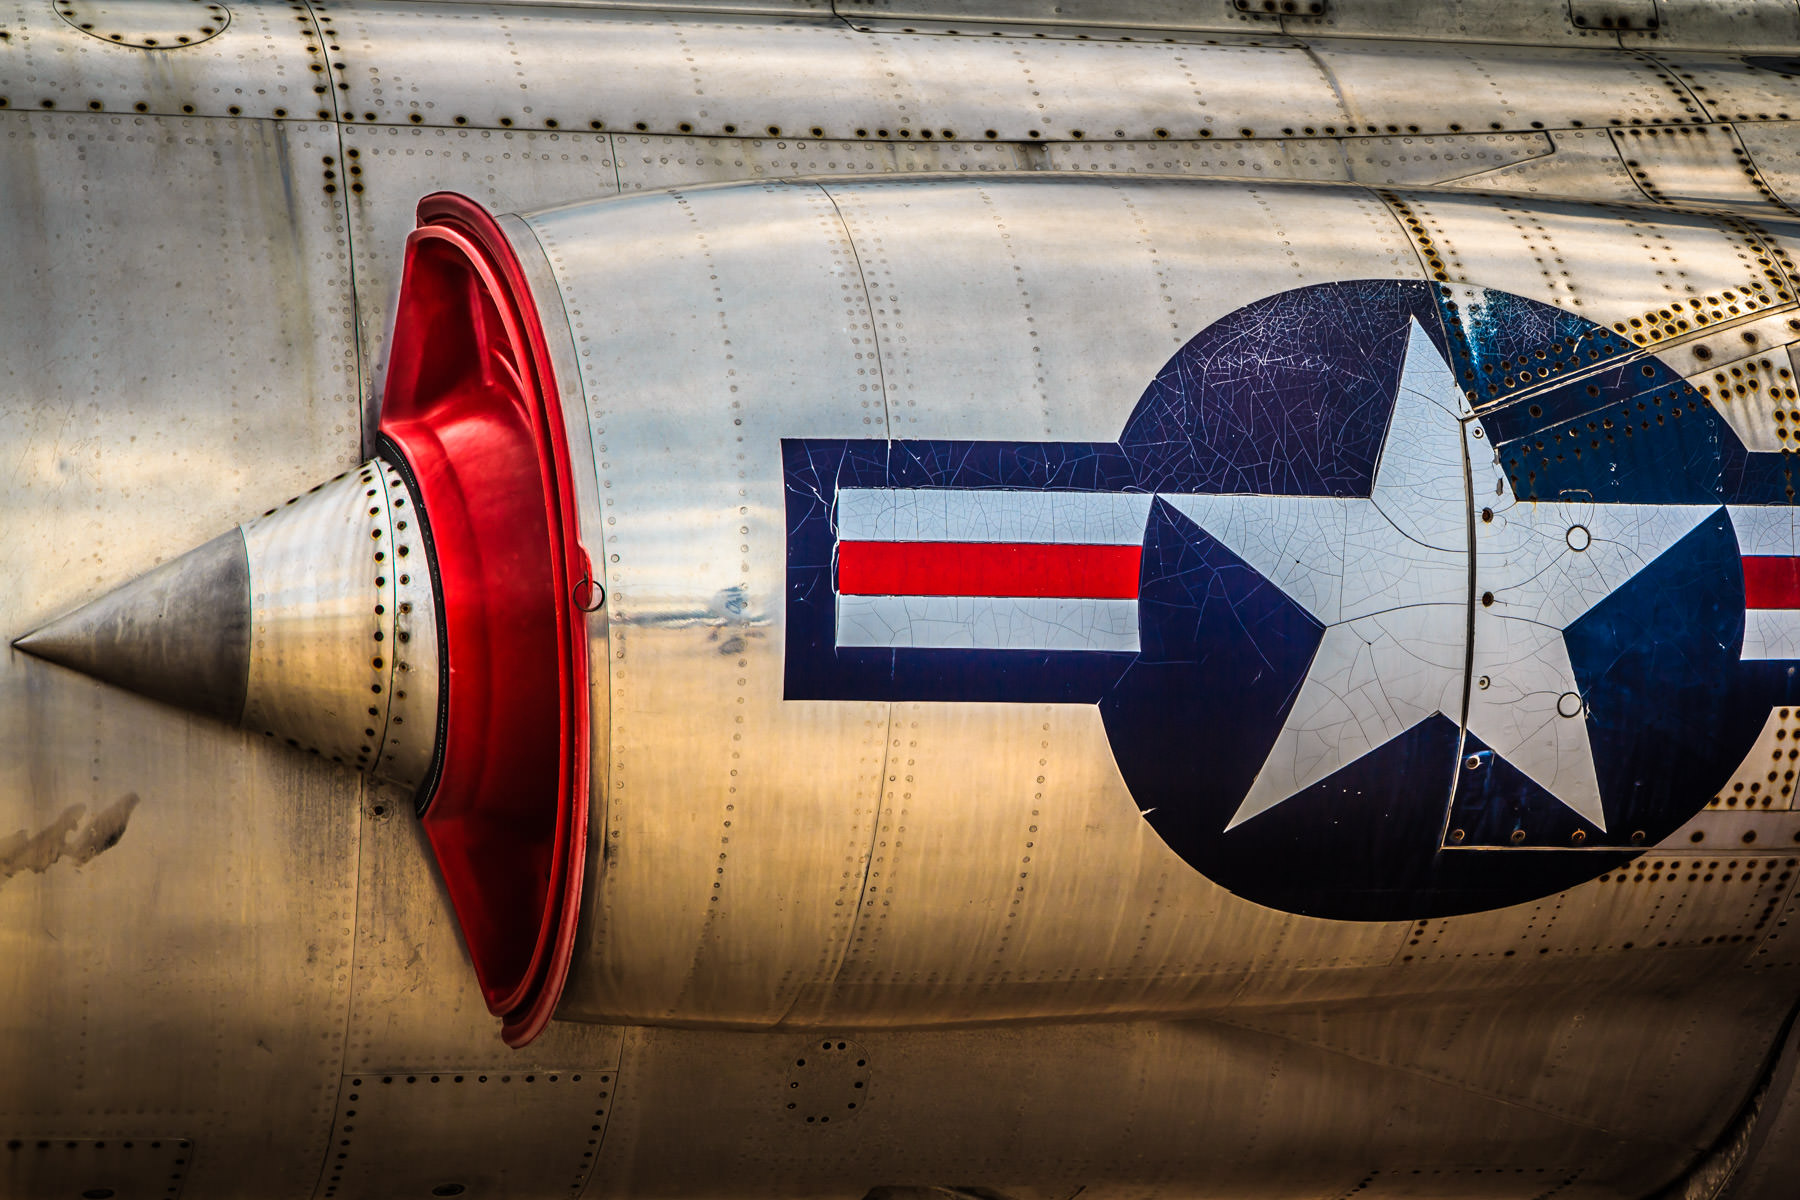 Detail of a Lockheed F-104A Starfighter at the Cavanaugh Flight Museum, Addison, Texas.